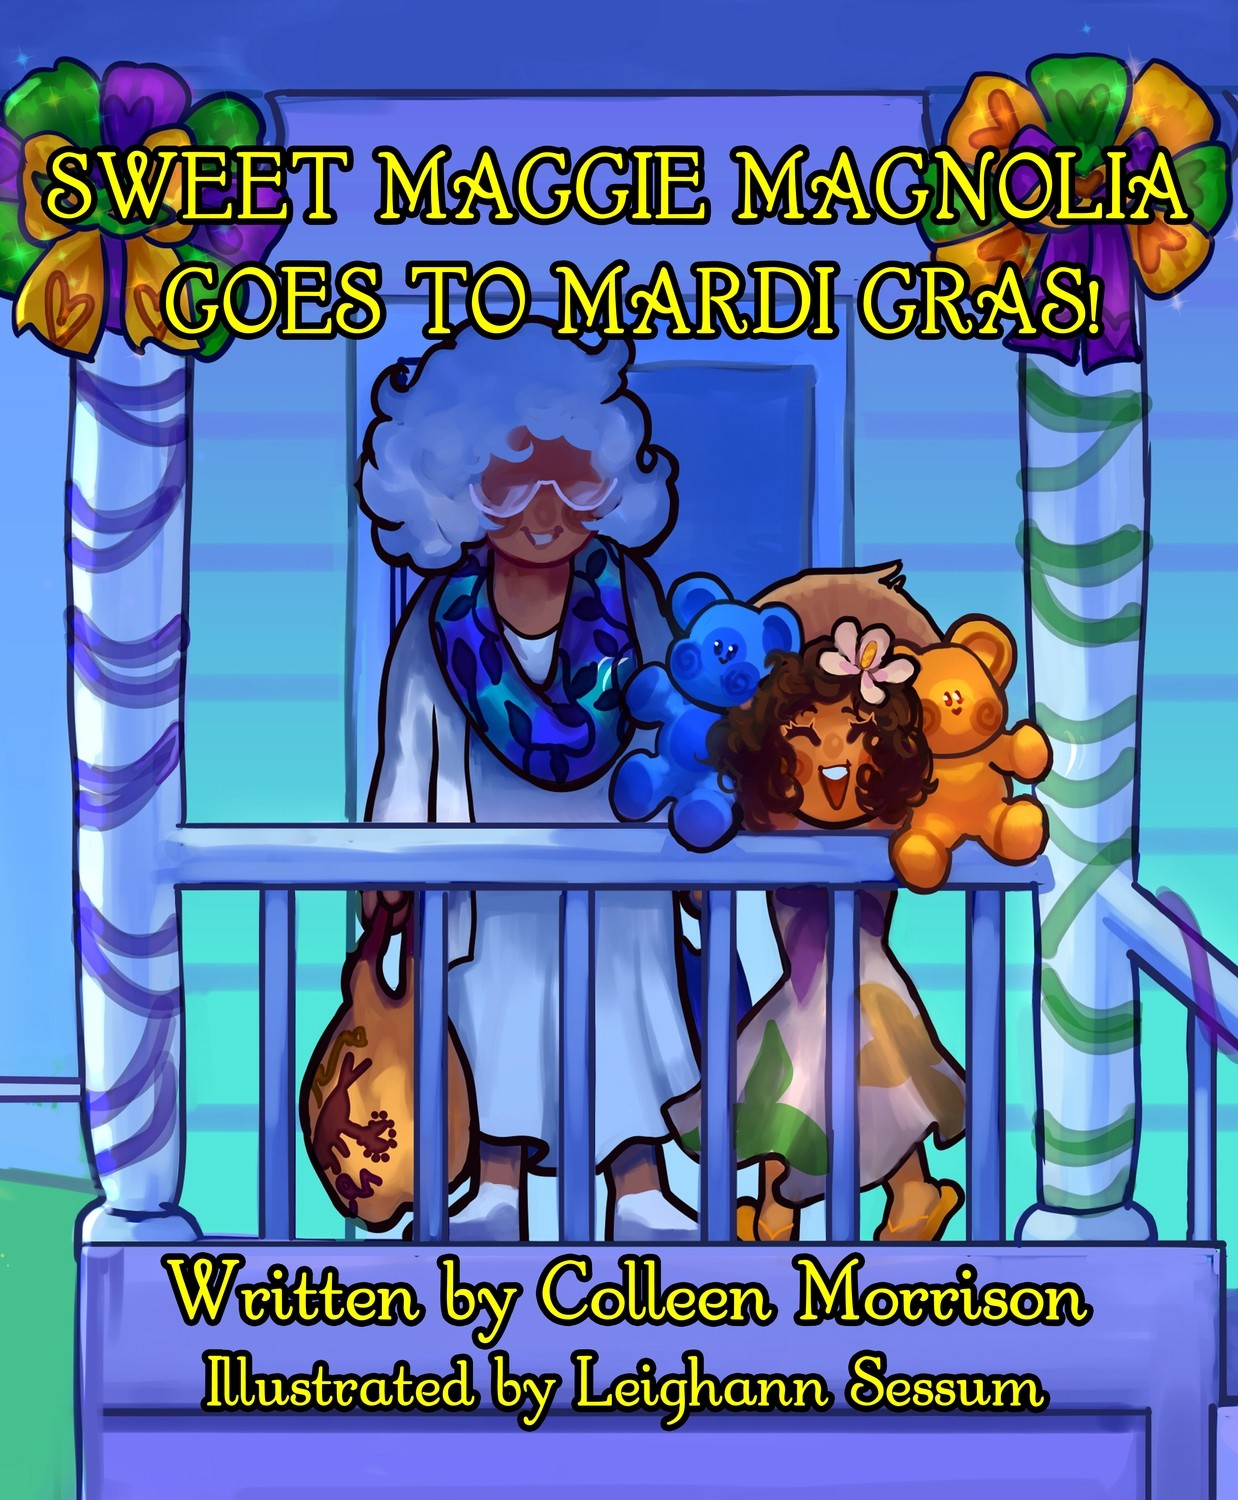 Sweet Maggie Magnolia Goes to Mardi Gras